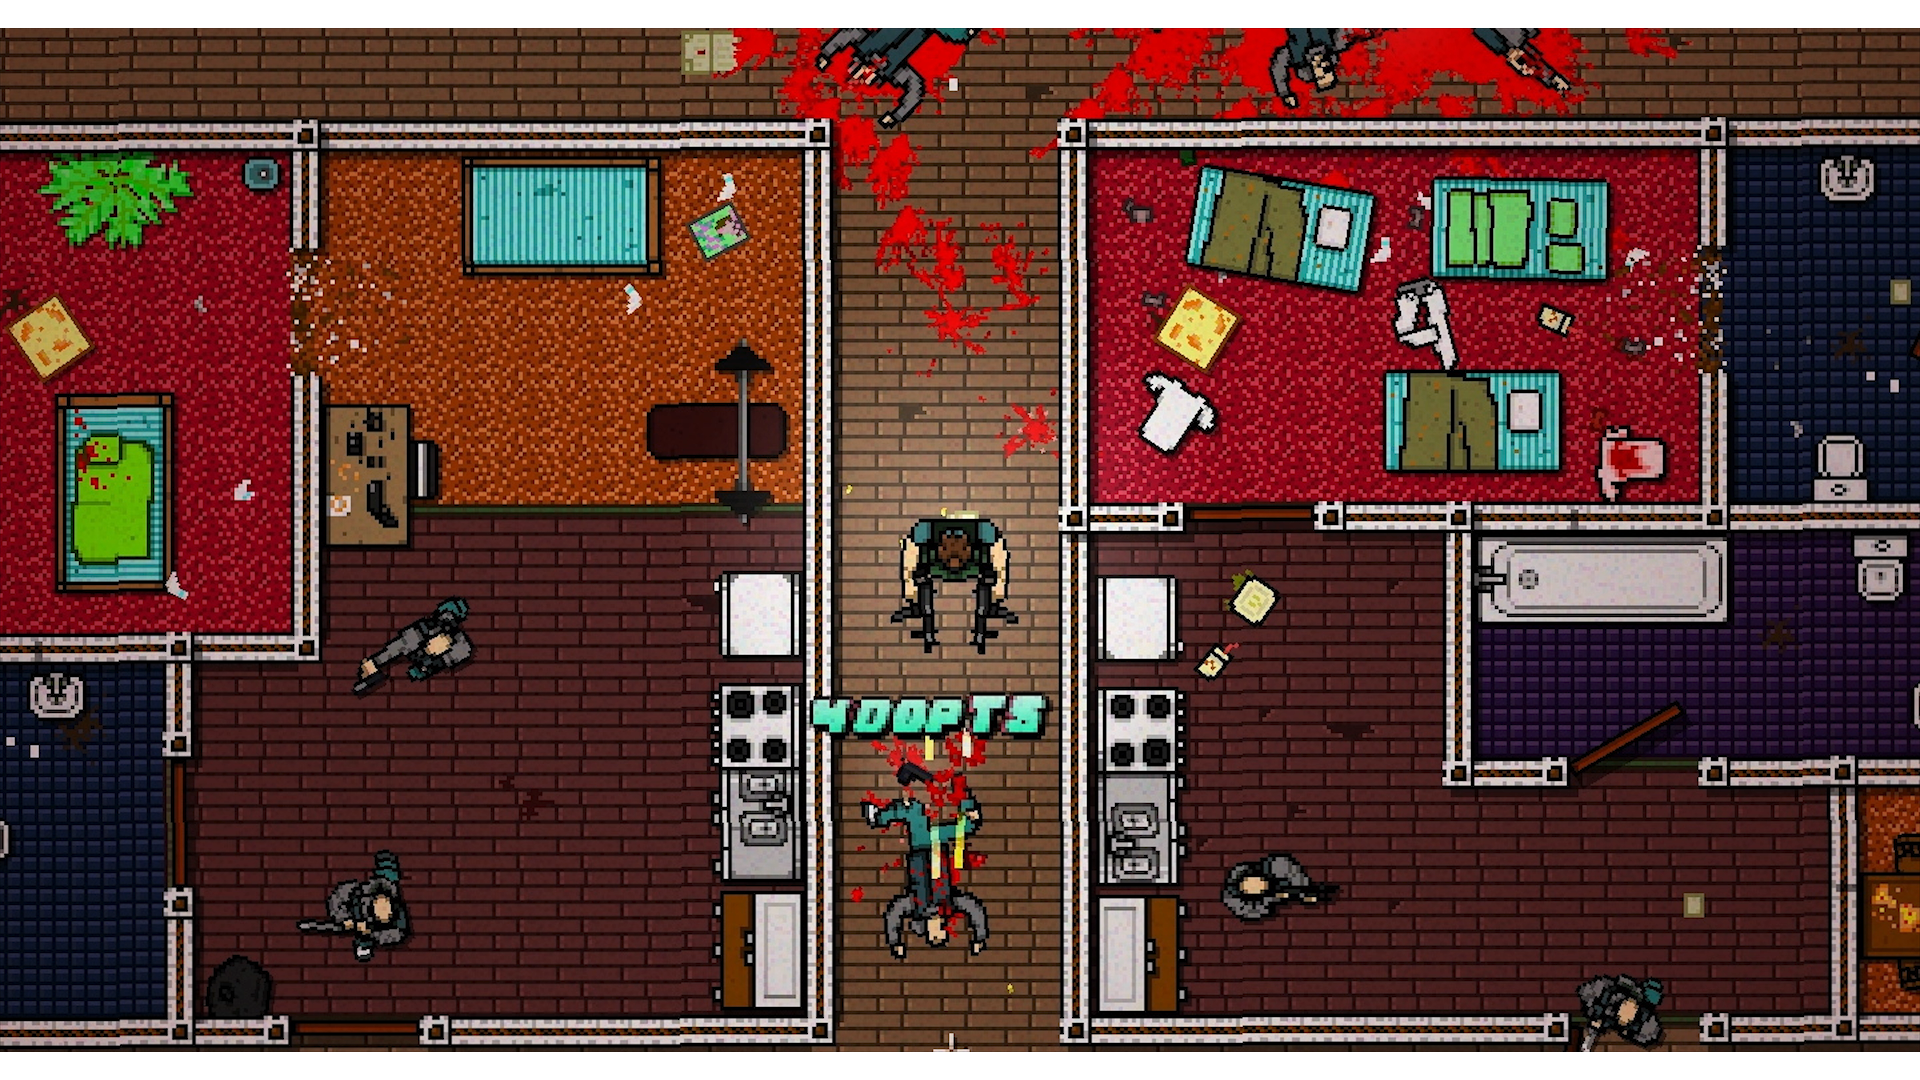 2501165-hotline+miami+2+-+screen+1